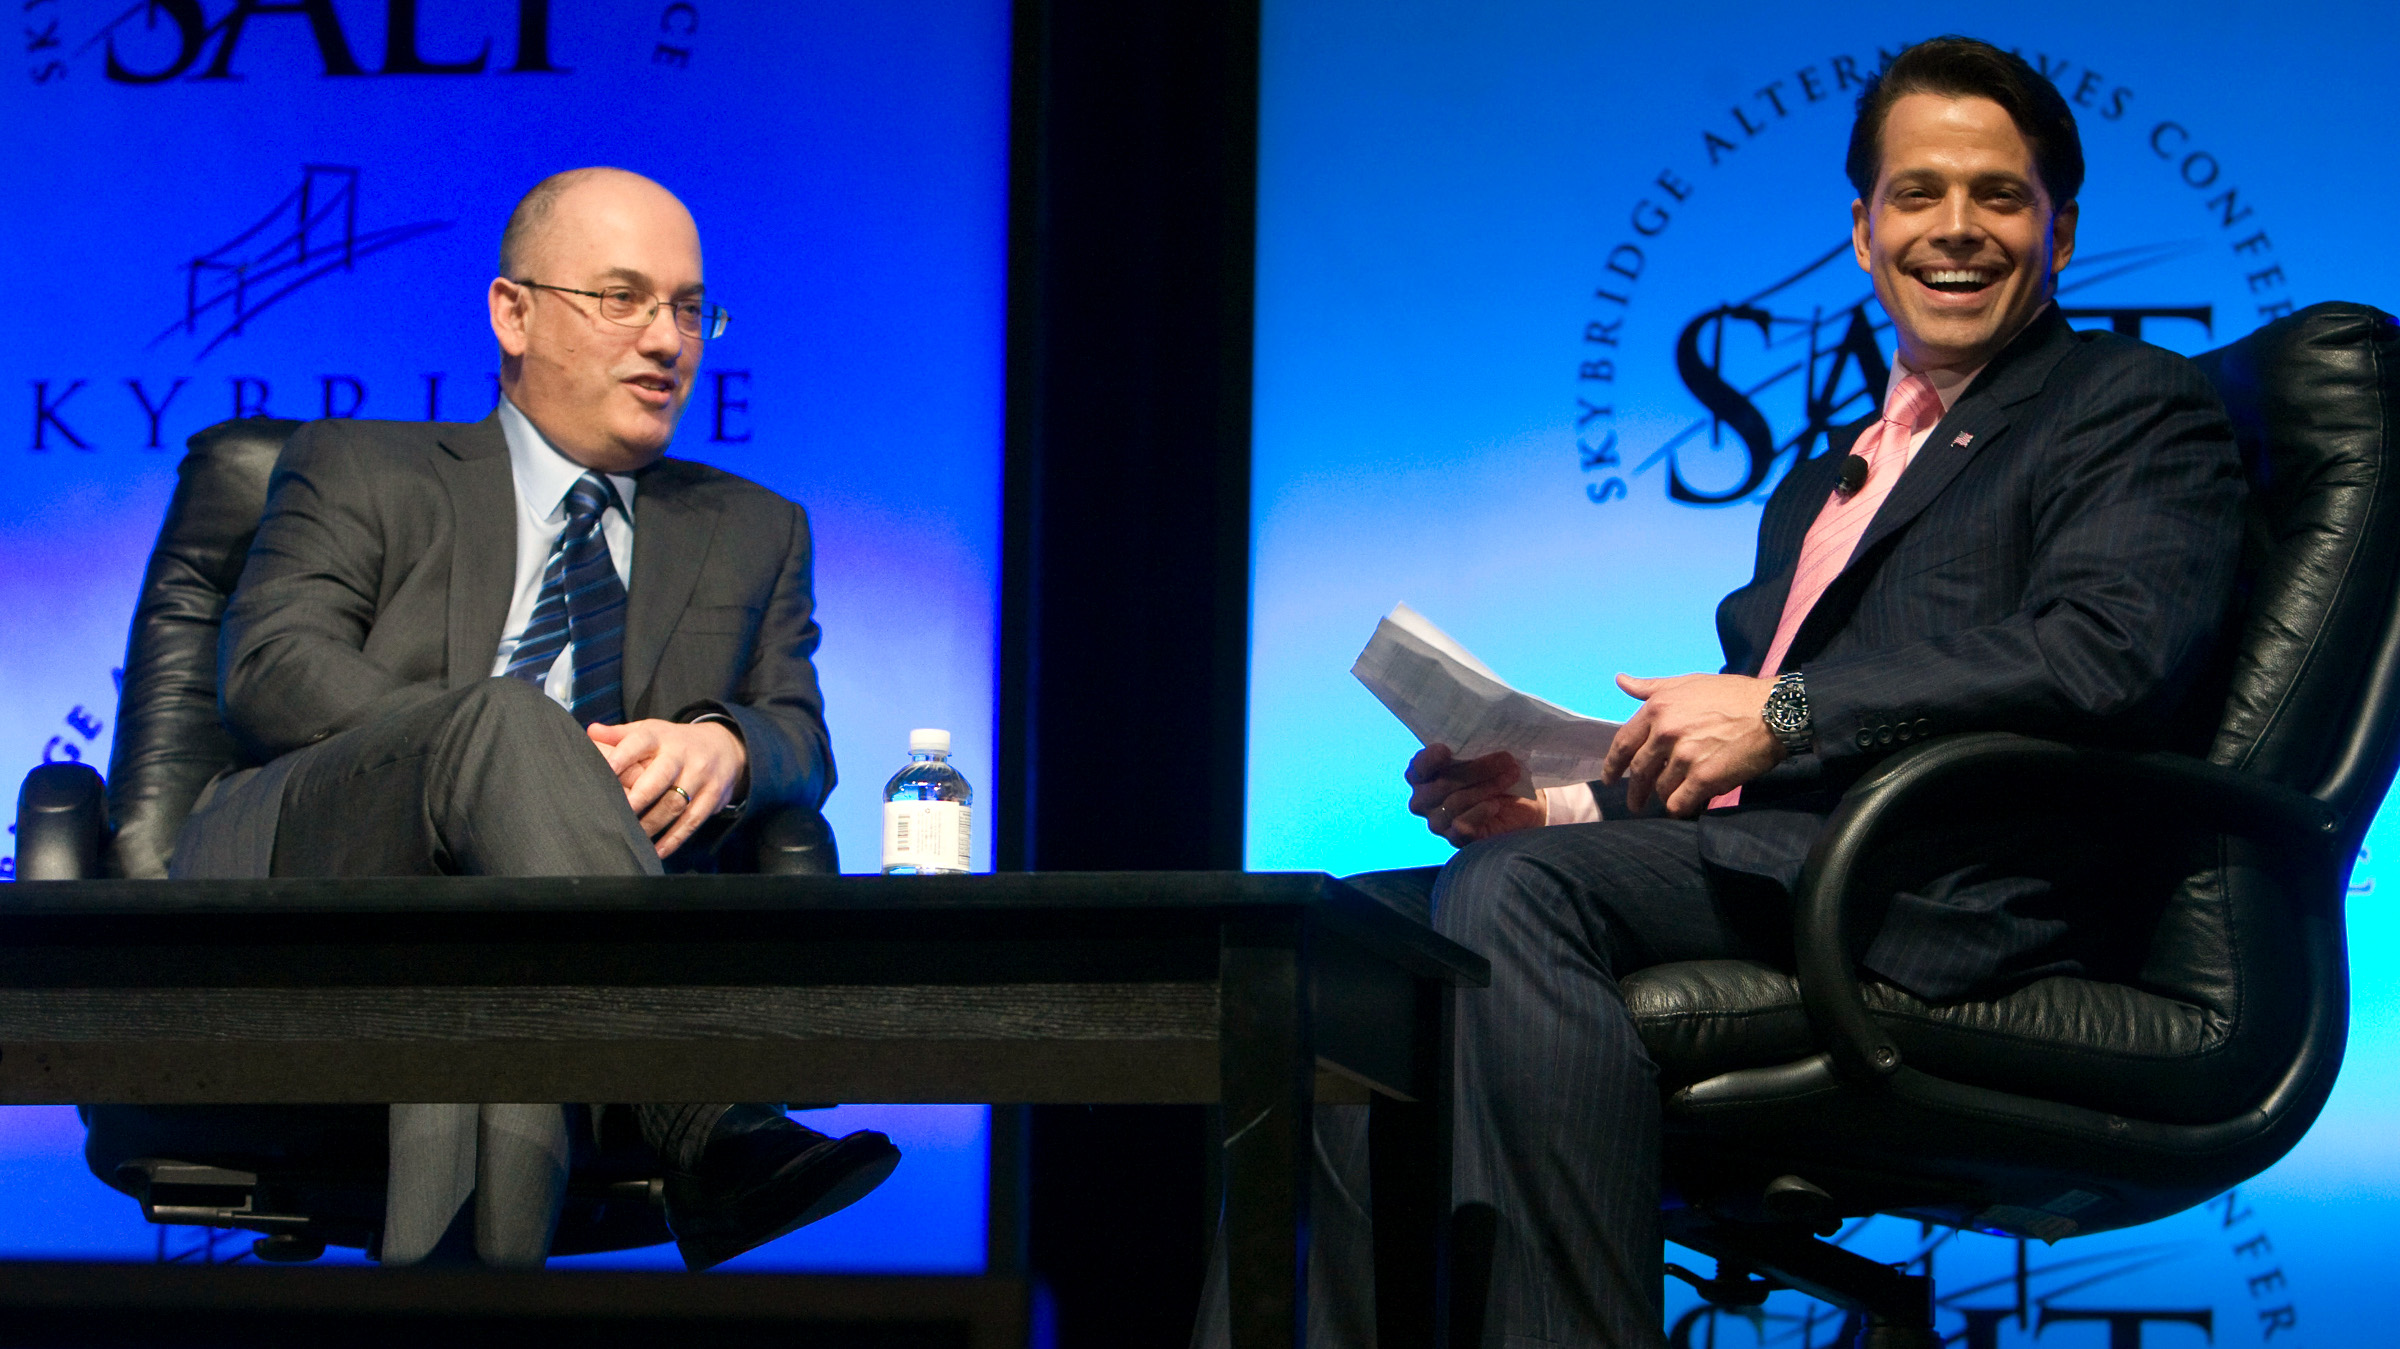 Hedge fund manager Steven A. Cohen (L), founder and chairman of SAC Capital Advisors, responds to a question during a one-on-one interview session with Anthony Scaramucci, managing partner of SkyBridge Capital, at the SkyBridge Alternatives (SALT) Conference in Las Vegas, Nevada May 11, 2011. Cohen, whose SAC Capital Advisors has drawn scrutiny from prosecutors probing insider trading, said his firm has and will cooperate with all government investigations.